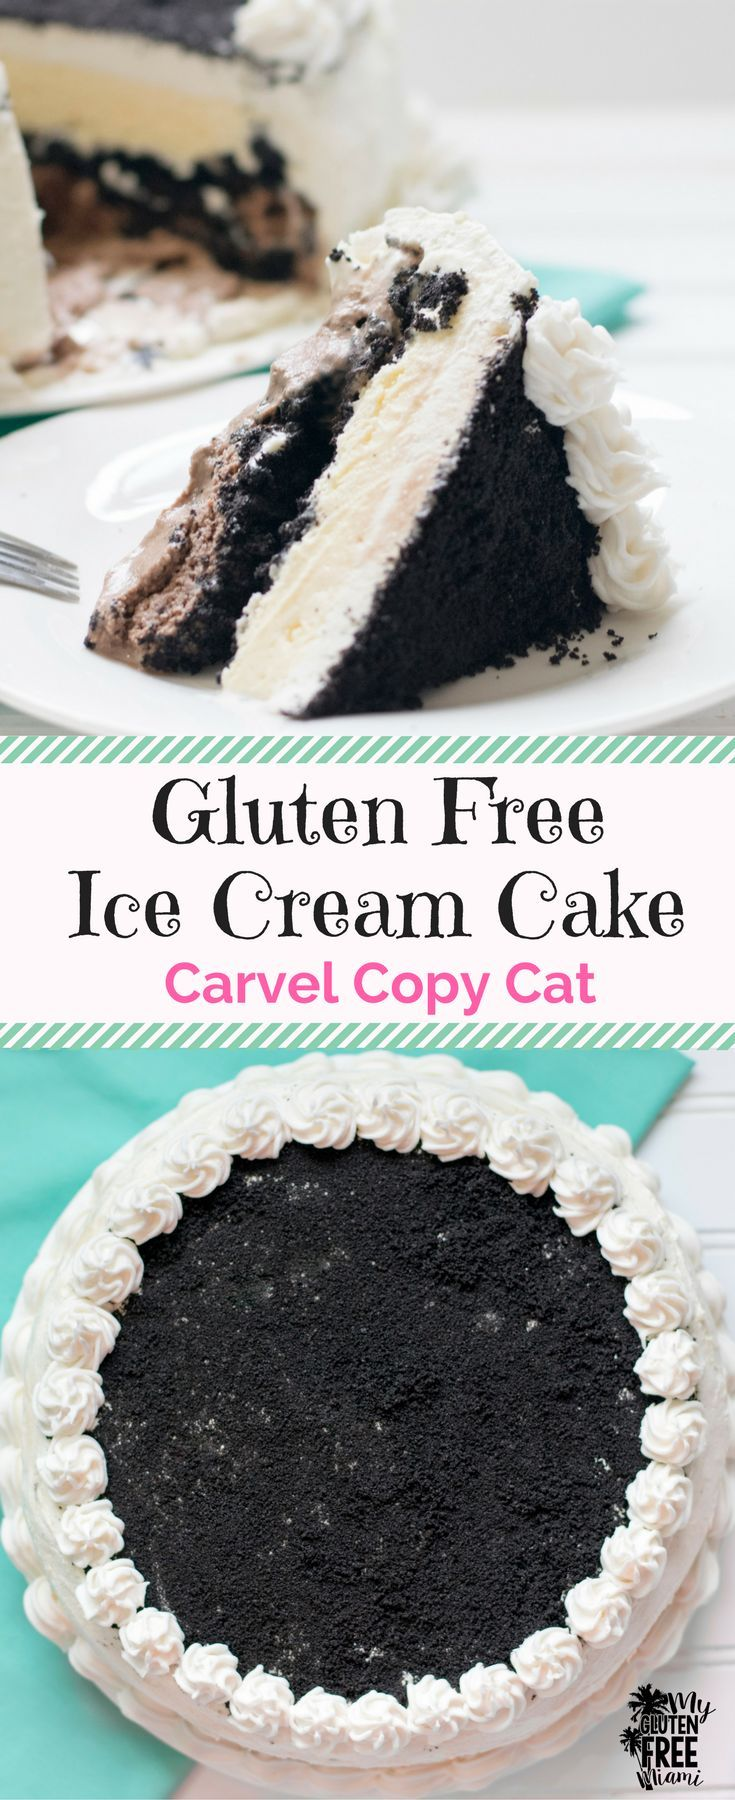 Gluten Free Ice Cream Cake (Carvel Copy Cat) with a crunchy chocolate cookie layer is the perfect birthday party addition or summer treat! Super easy to make! via @GLUTENFREEMIAMI